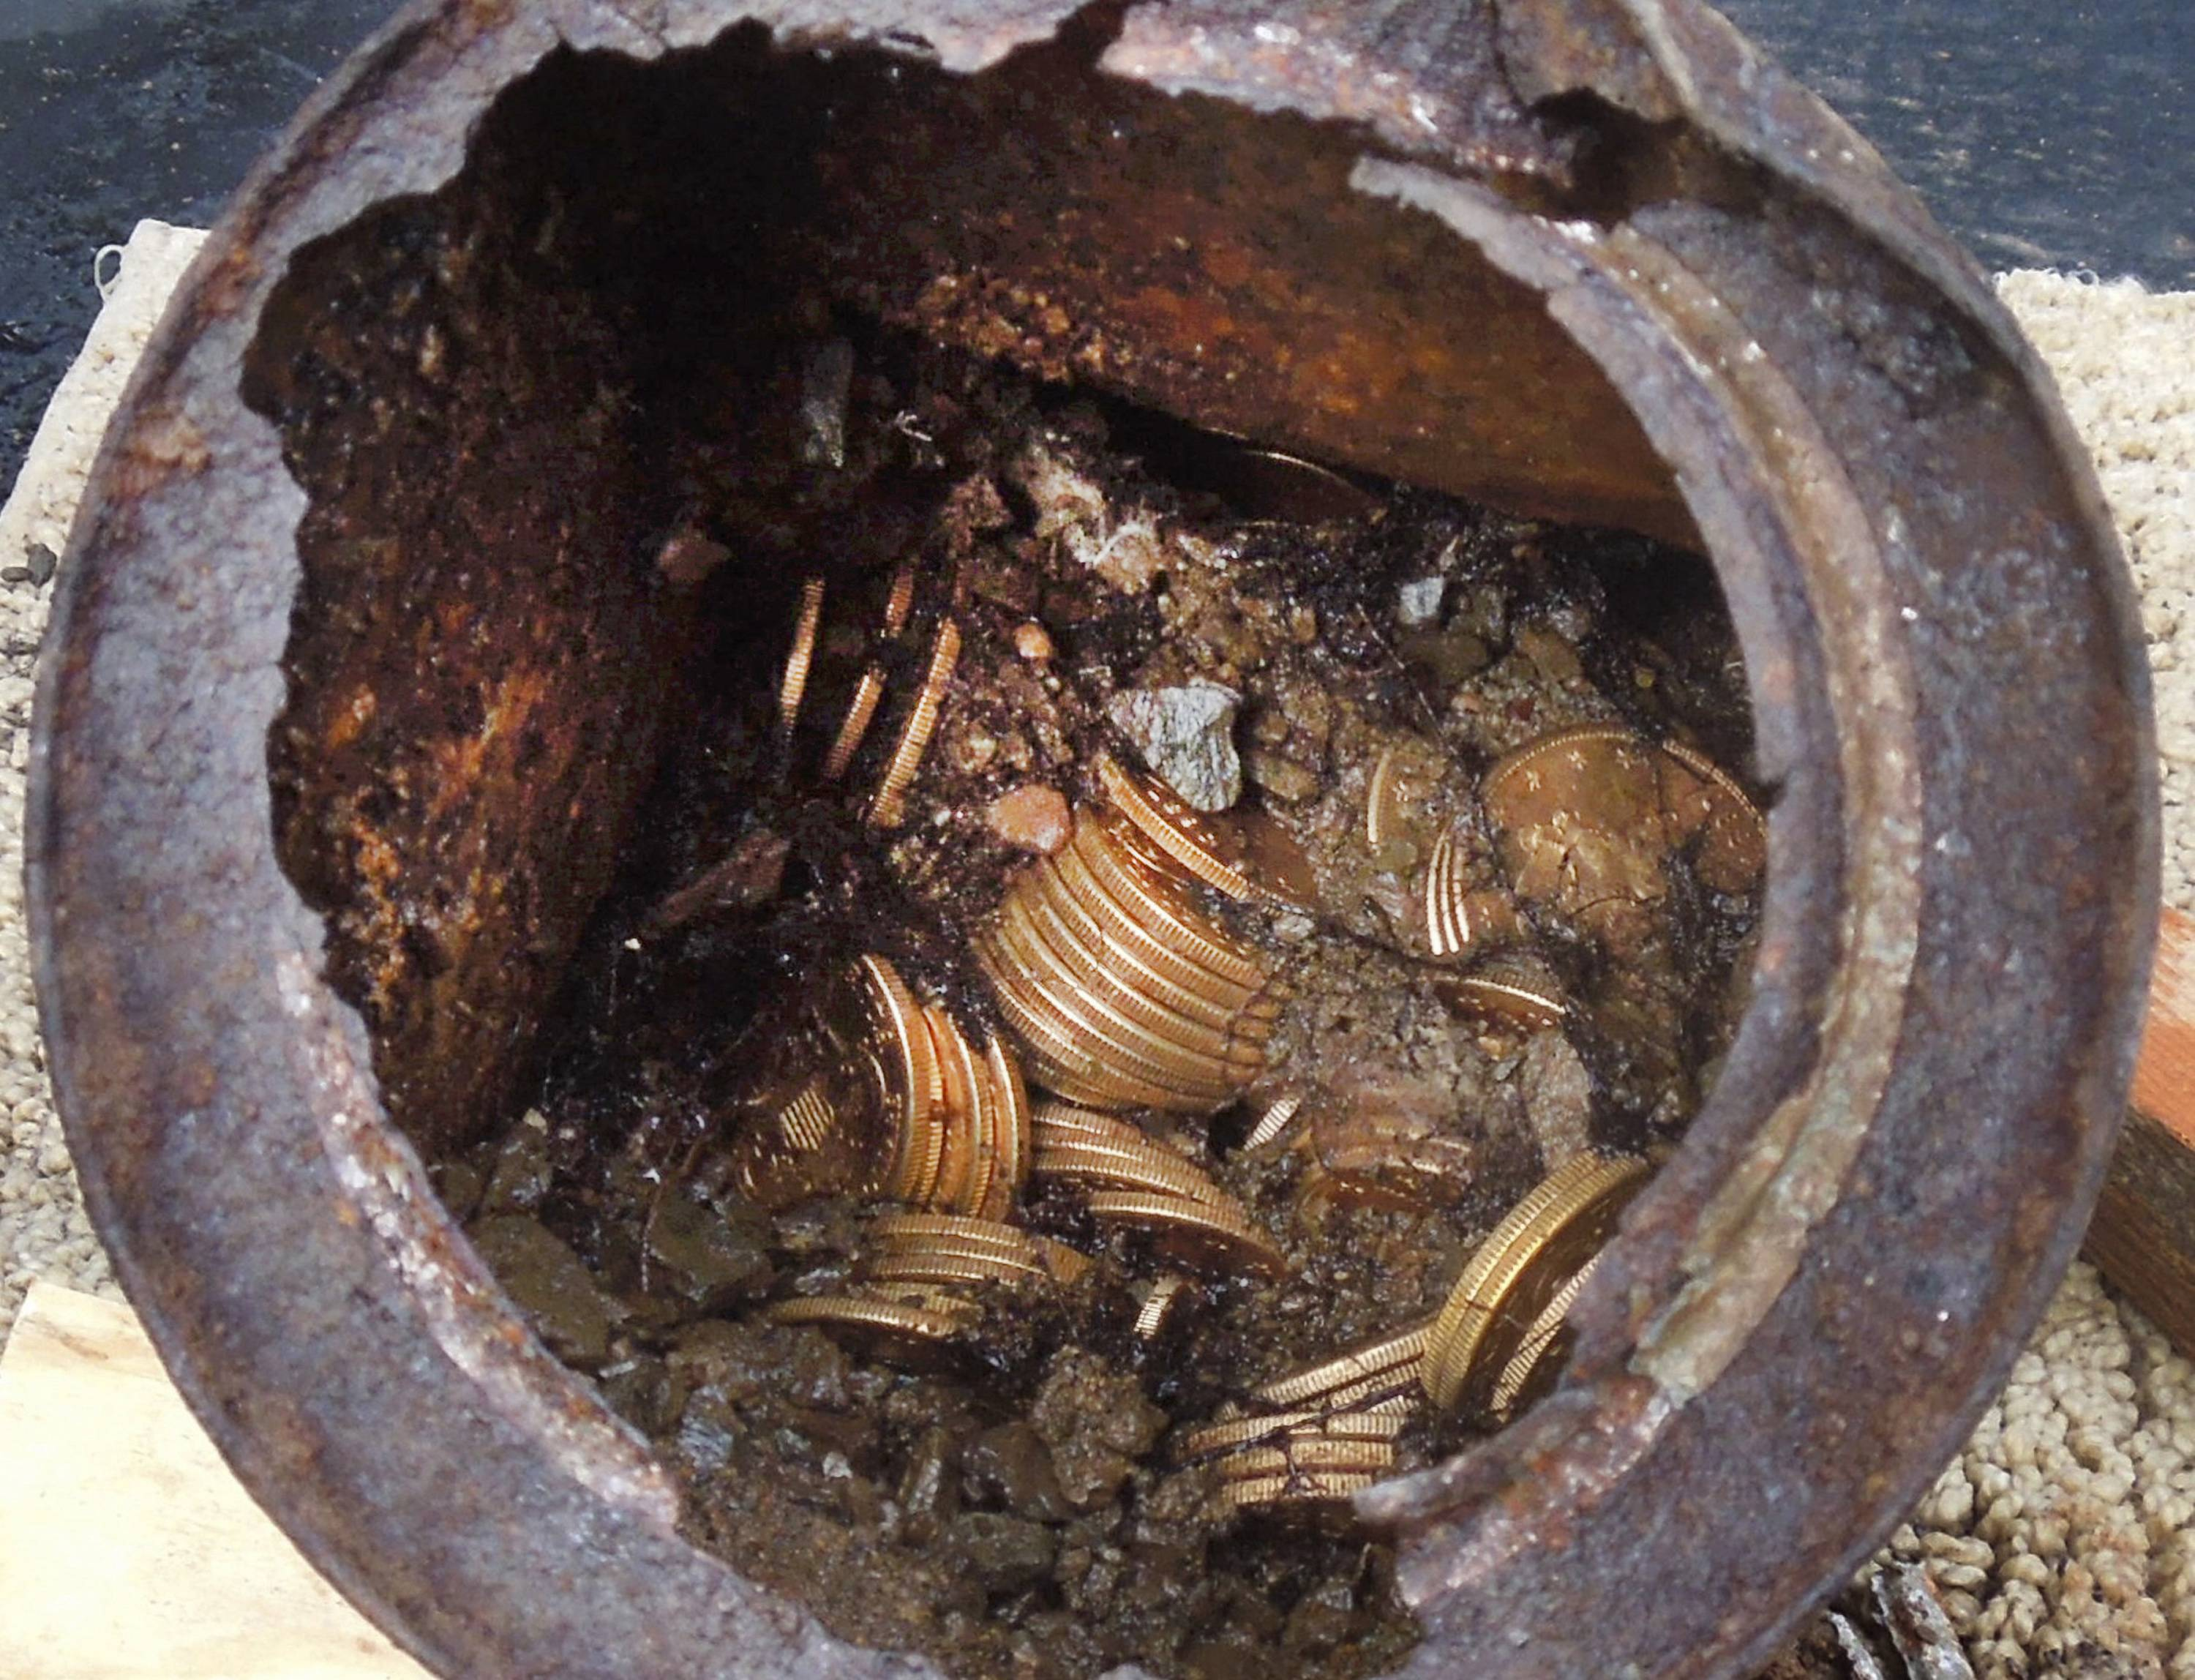 "This is one of the six decaying metal canisters filled with 1800s-era U.S. gold coins unearthed in California by two people who wish to remain anonymous. The value of the ""Saddle Ridge Hoard"" treasure trove is estimated at $10 million or more."